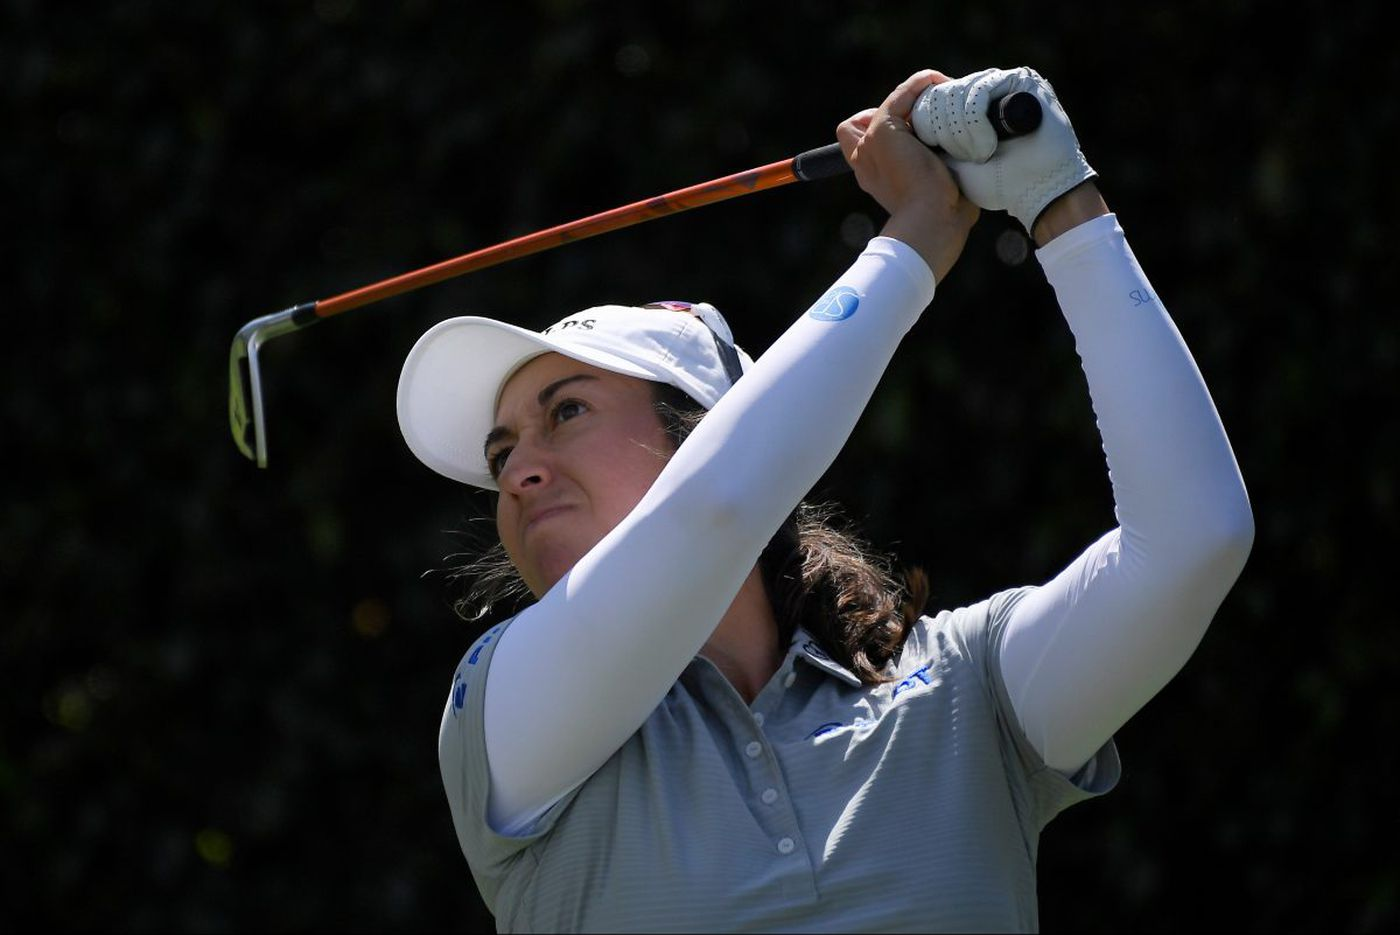 LPGA player Marina Alex likes to tout her New Jersey roots